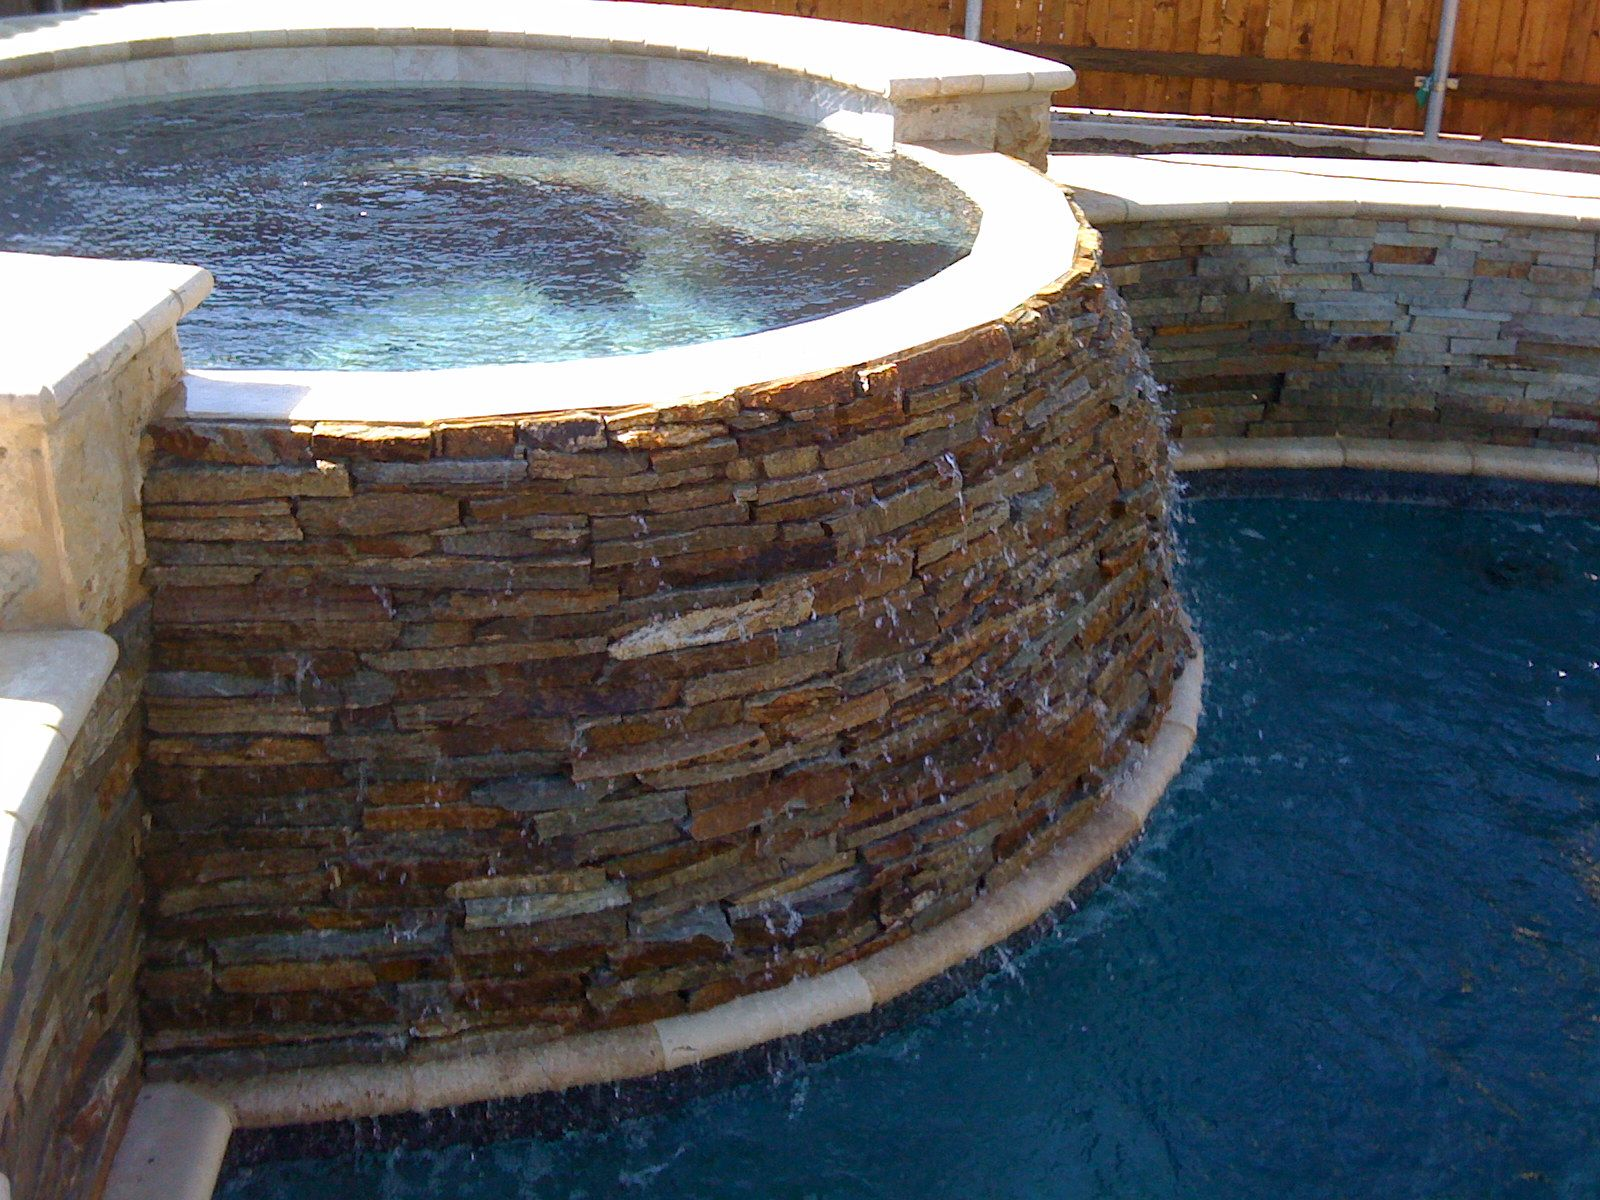 Pool Remodeling DFW | Dallas Area Pool Remodeling ... on Dfw Complete Outdoor Living id=33180